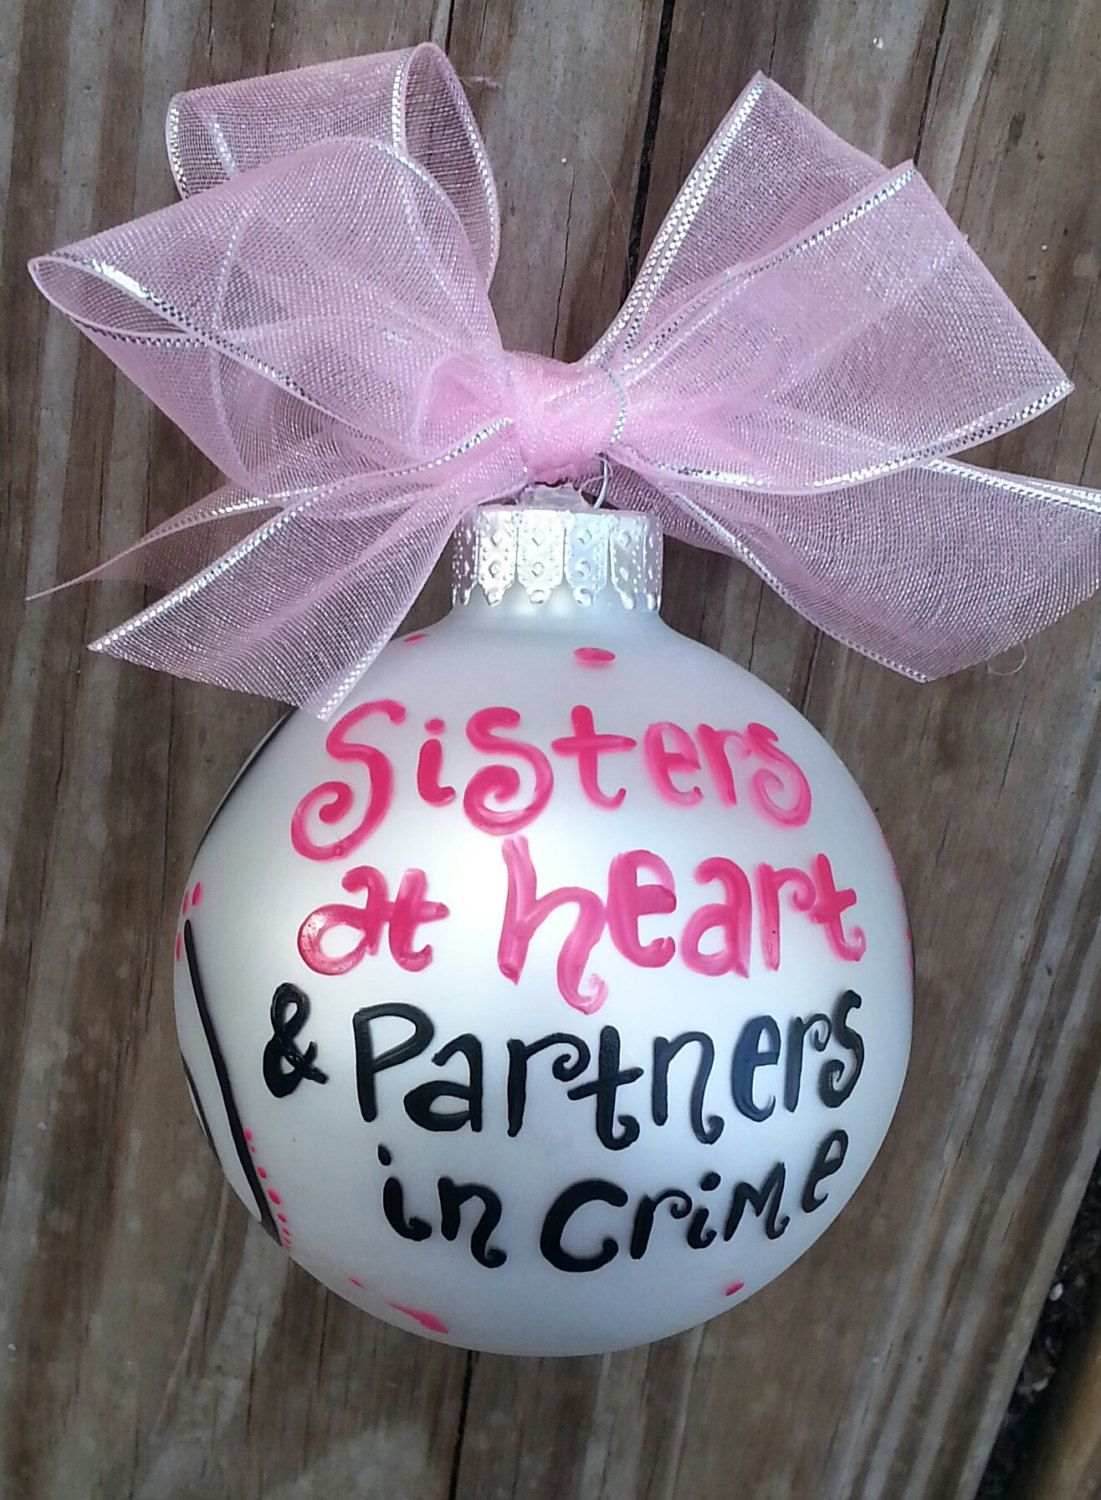 best friend sisters at heart partners in by jessicakdesigns 1200 best friends ornament - Best Friend Christmas Ornaments